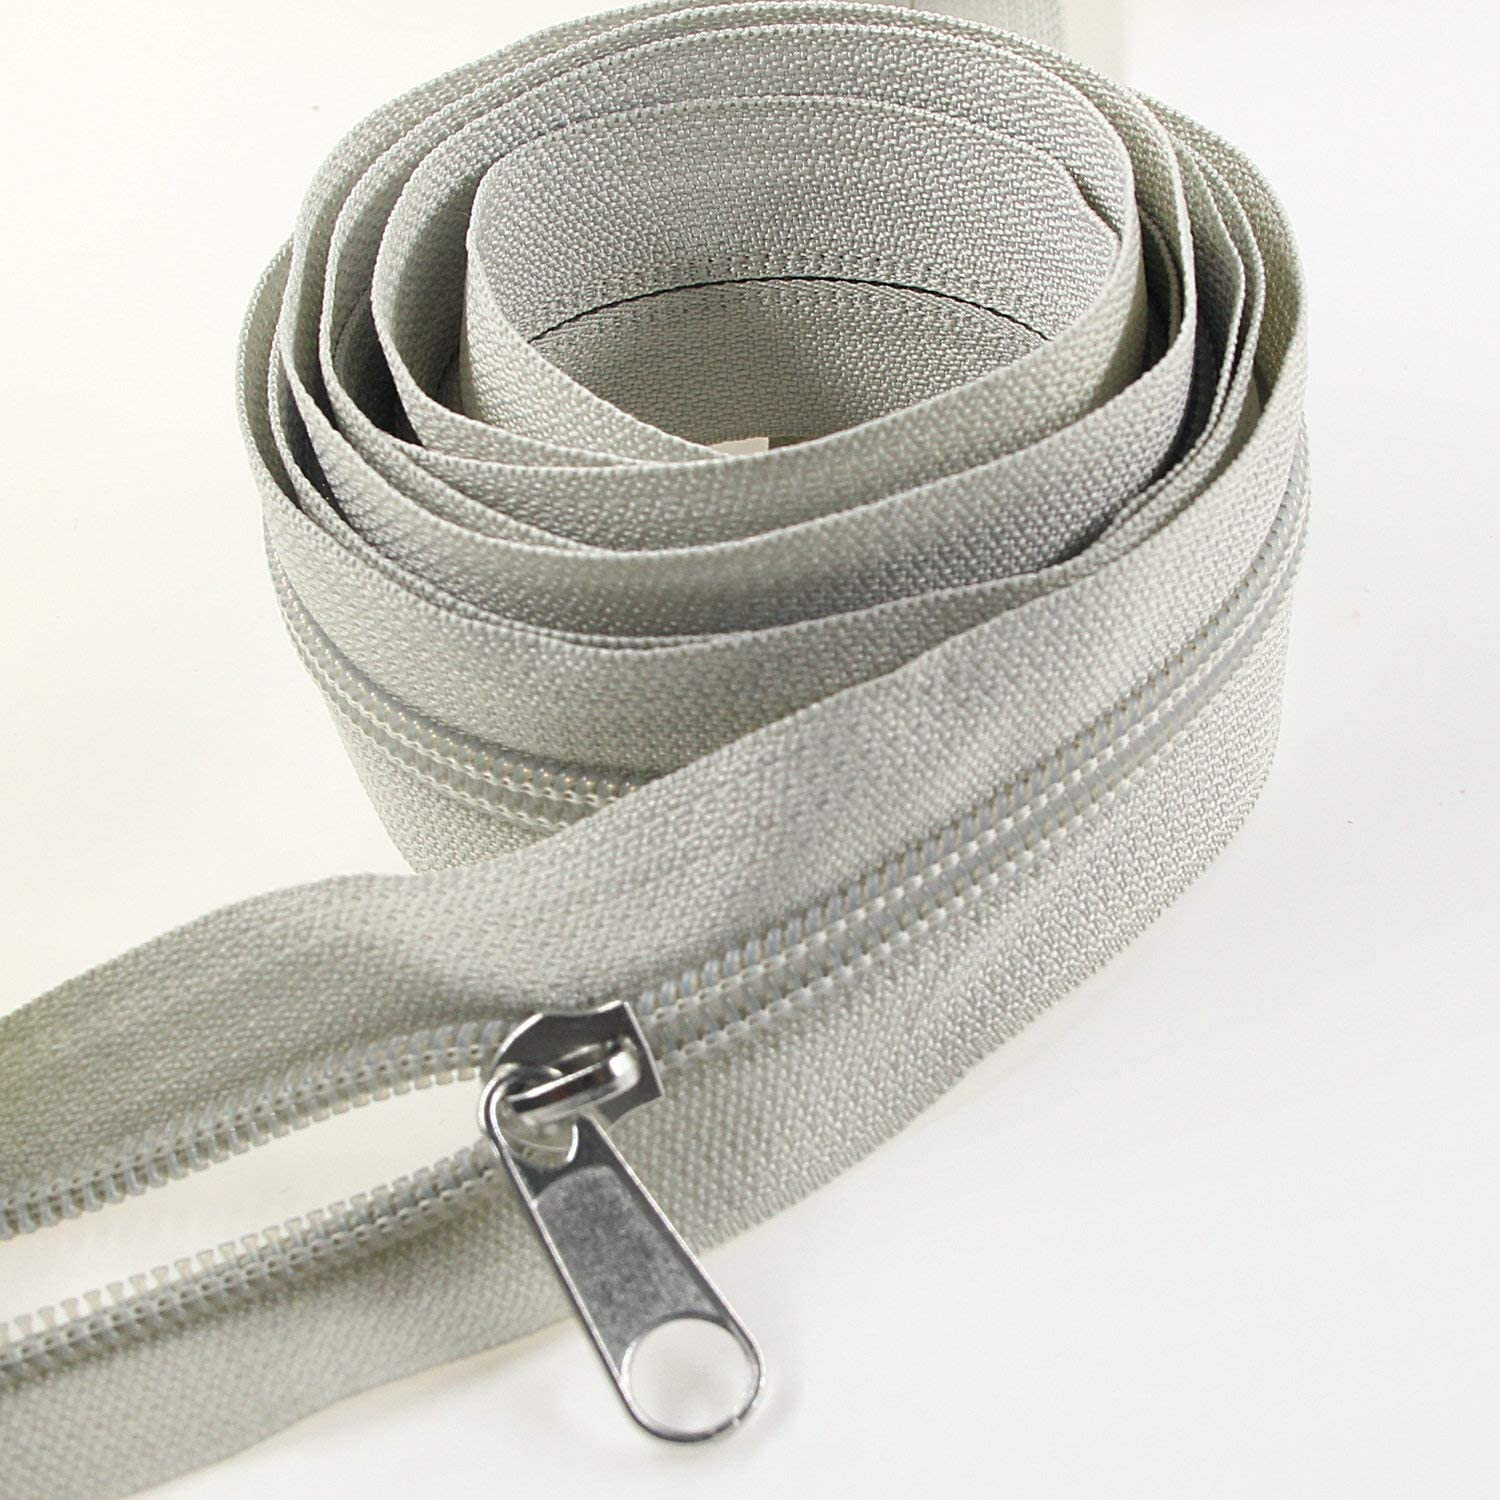 Gray #5 Gray Nylon Coil Zippers by The Yard Bulk 10 Yards with 25pcs Silver Sliders for DIY Sewing Tailor Craft Bag Leekayer